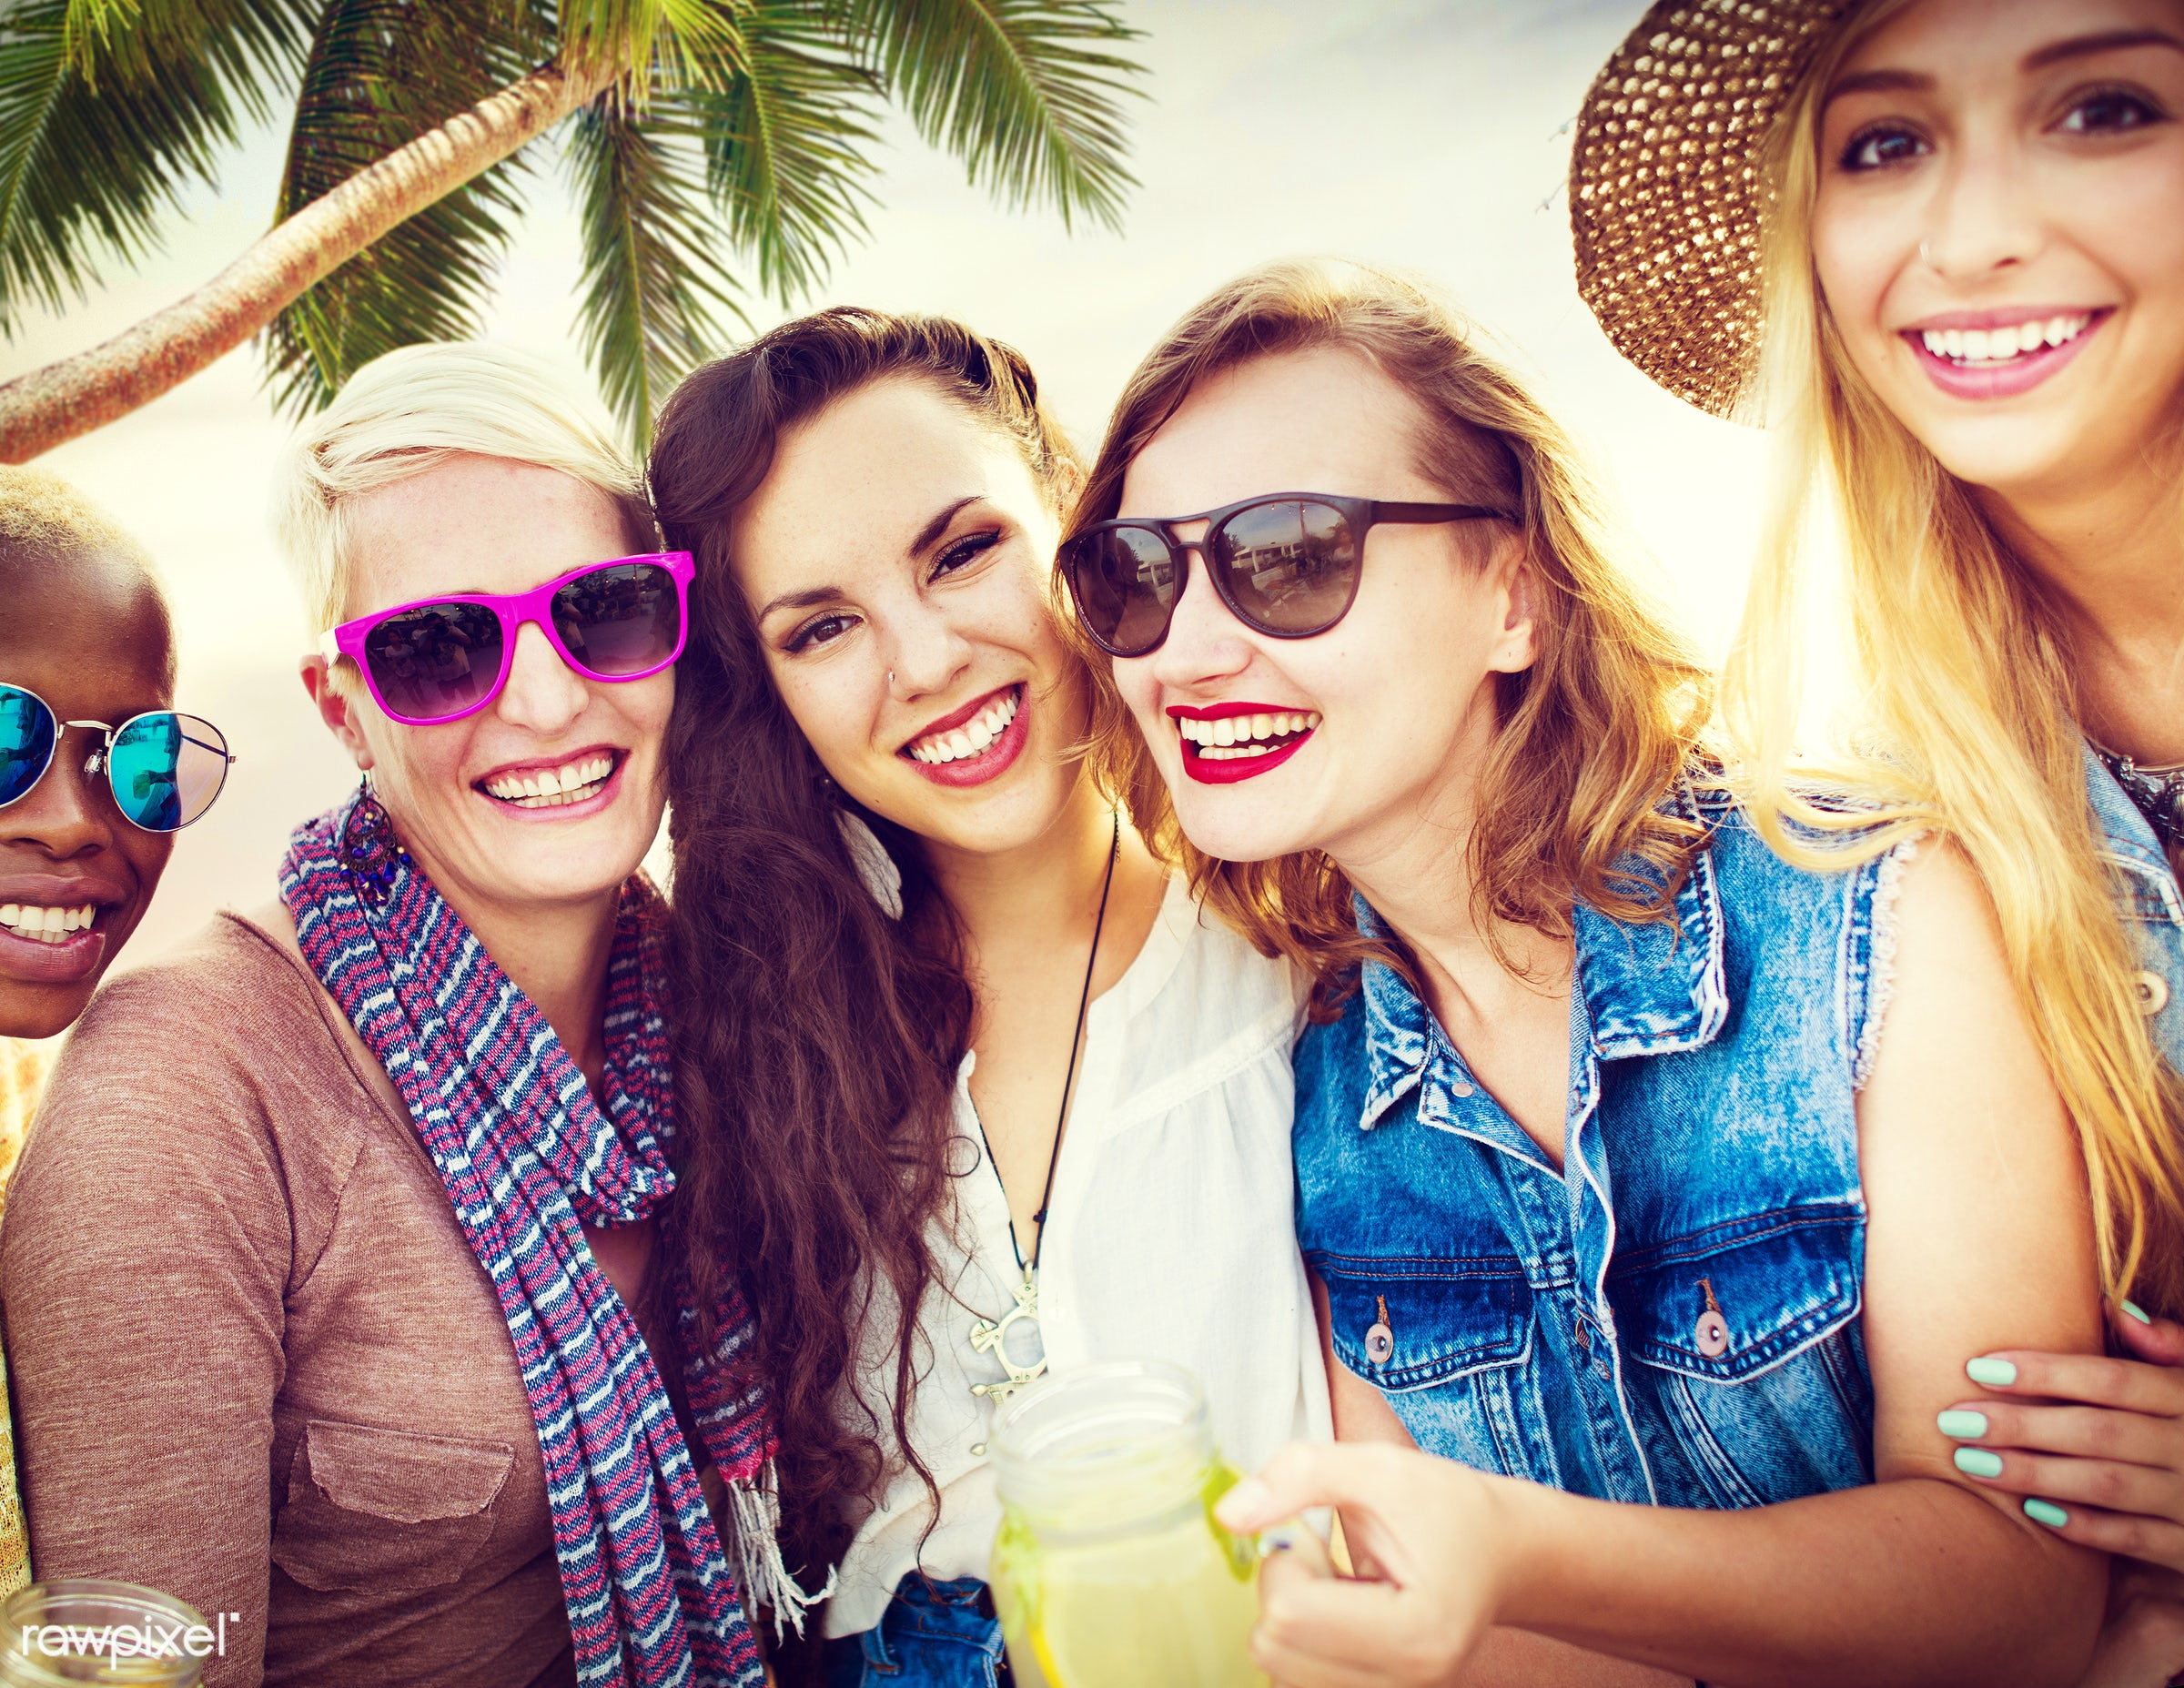 Happy group of friends - beach, beautiful, bonding, casual, cheerful, chilling, colorful, day, diverse, diversity, drinking...